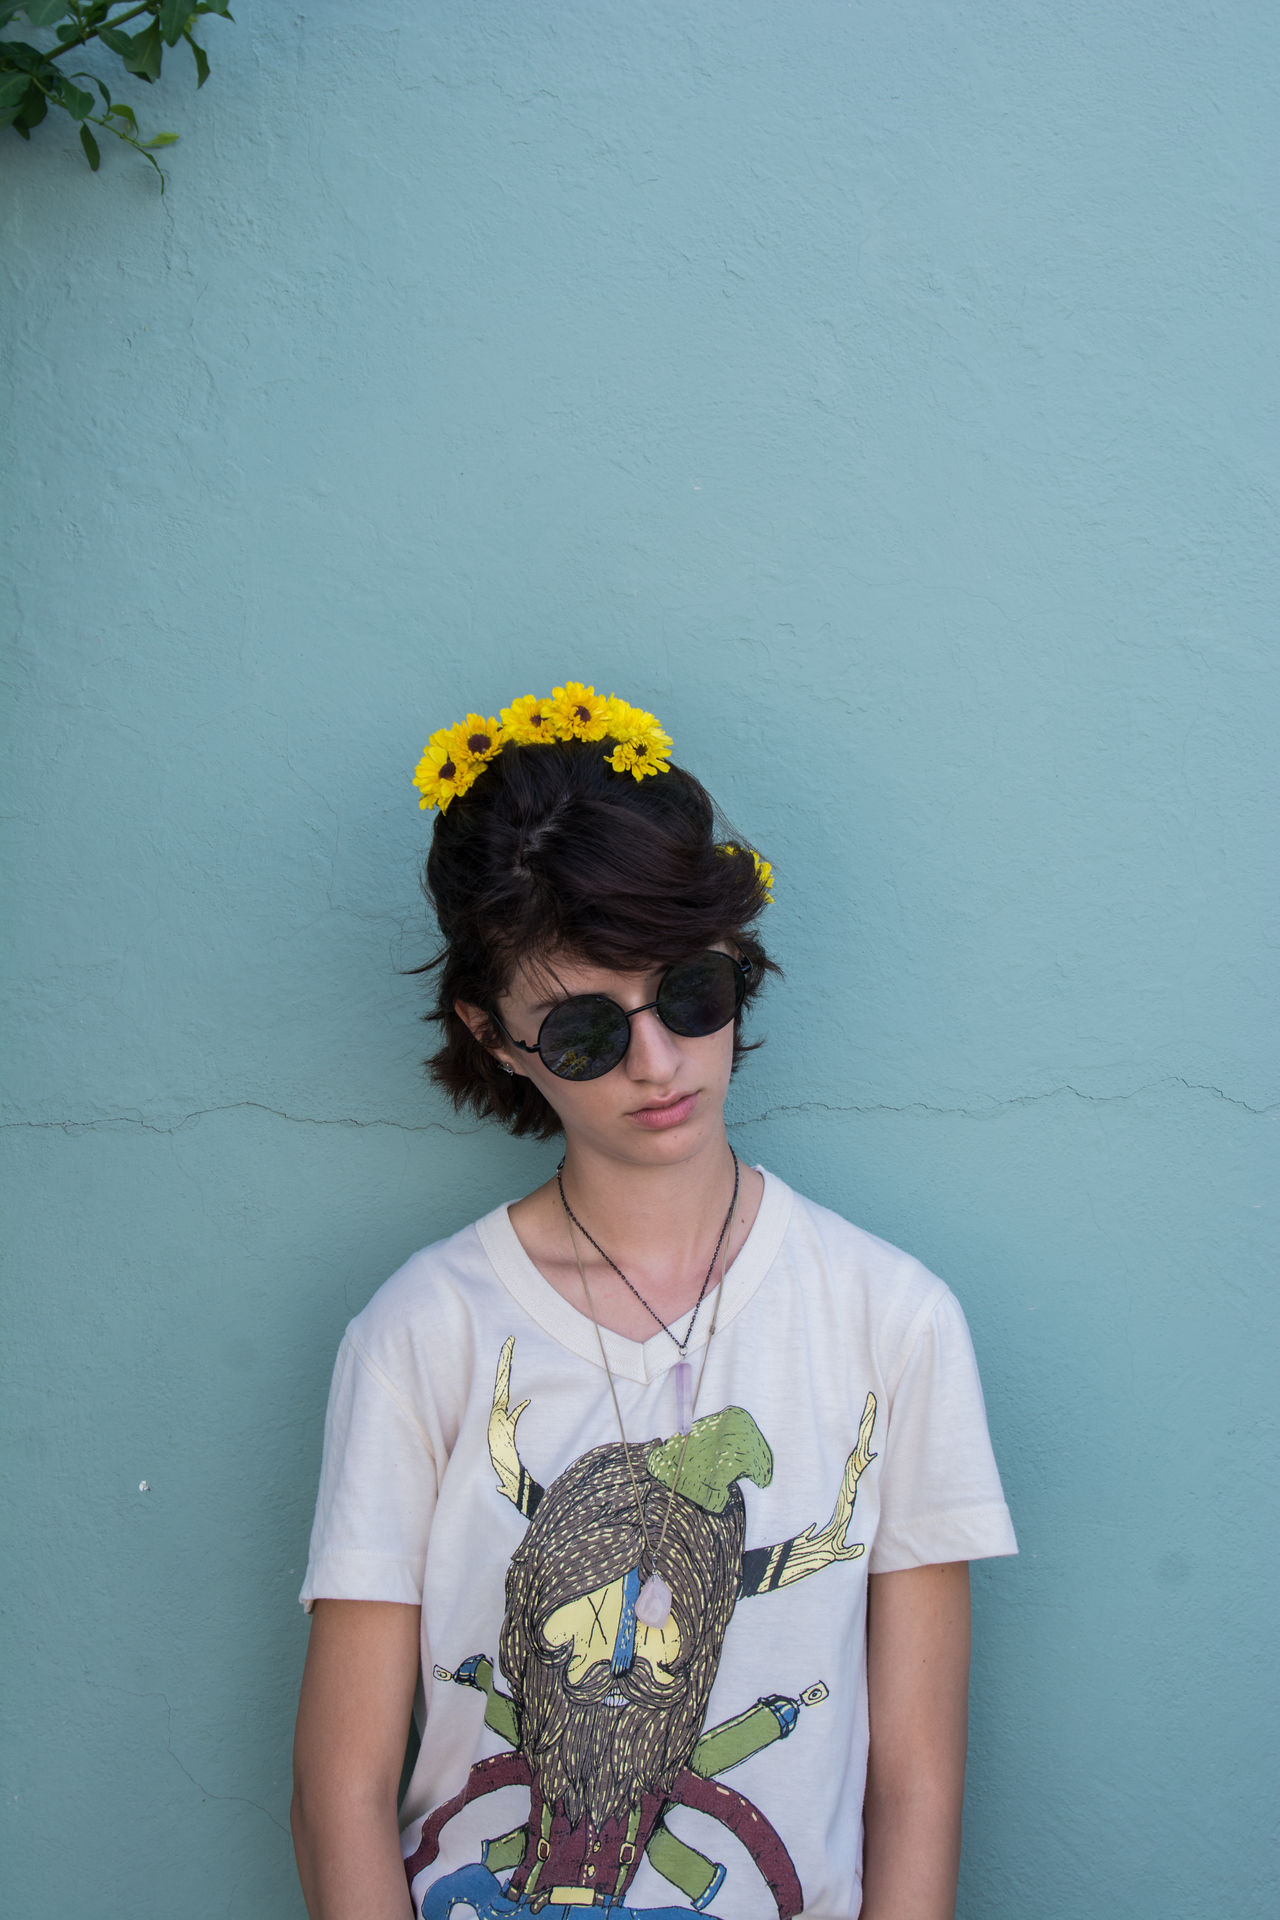 Flowersinyourhair Flowers Yellow Flower Colors Plants Plants And Flowers Cute Girl Street Streetphotography Glases EyEmNewHere Daylight Blue Live For The Story One Person Hair Hairstyle Nature Yelow Draw Shirt The Portraitist - 2017 EyeEm Awards Fissure MadeInMexico